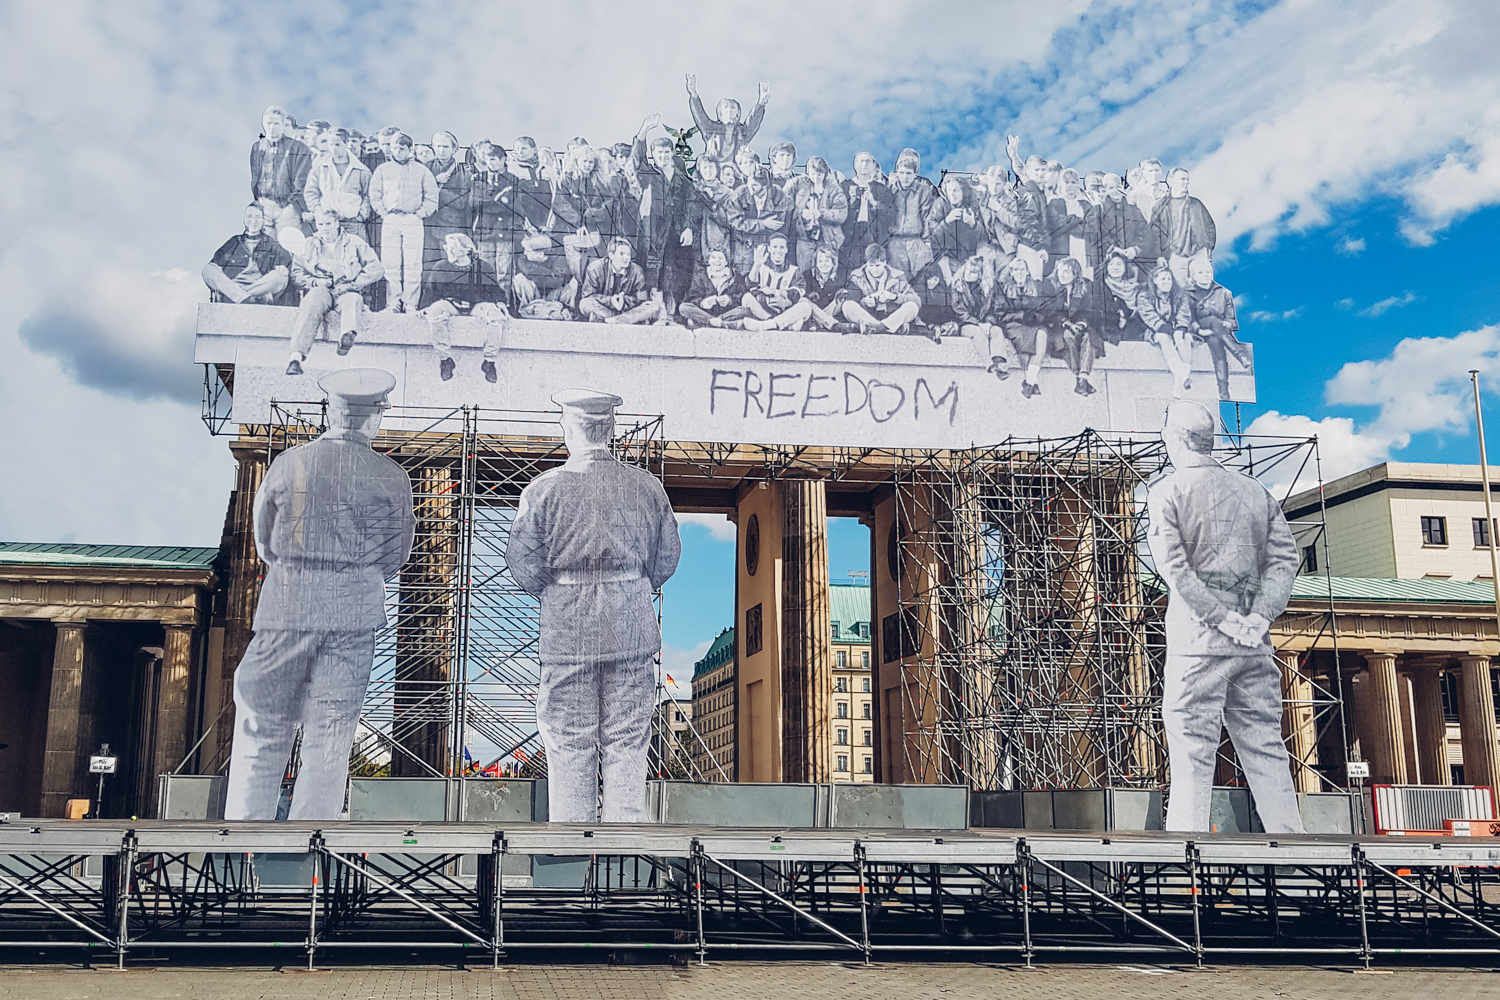 Iconic French Street Artist JR takes over Brandenburger Tor